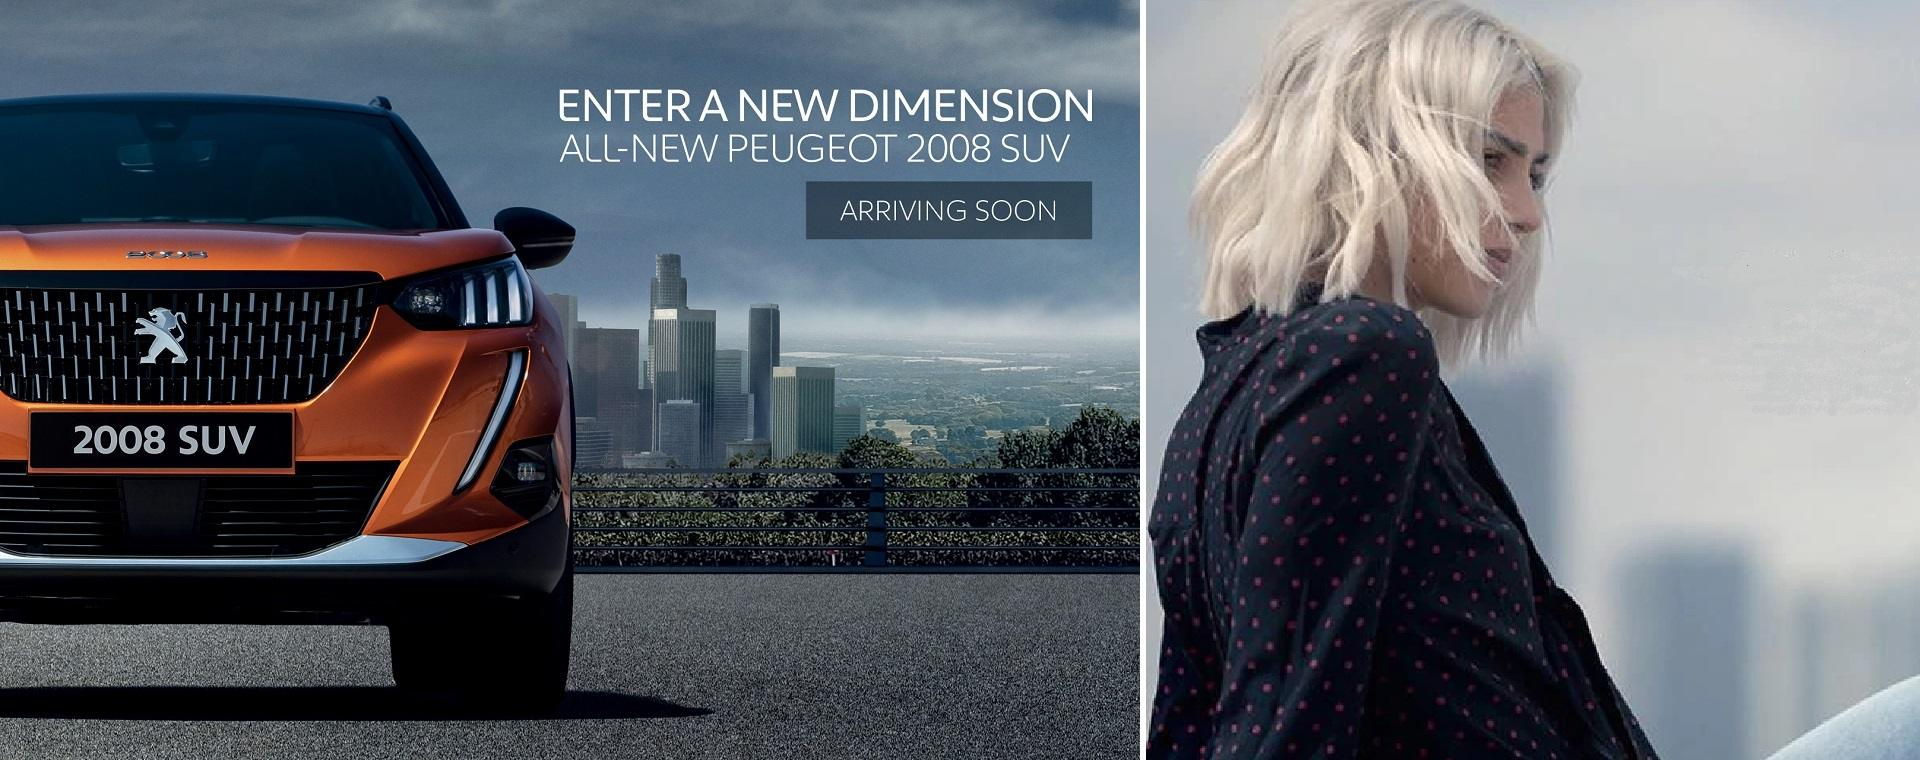 PEUGEOT | Coming Soon New 2008 SUV